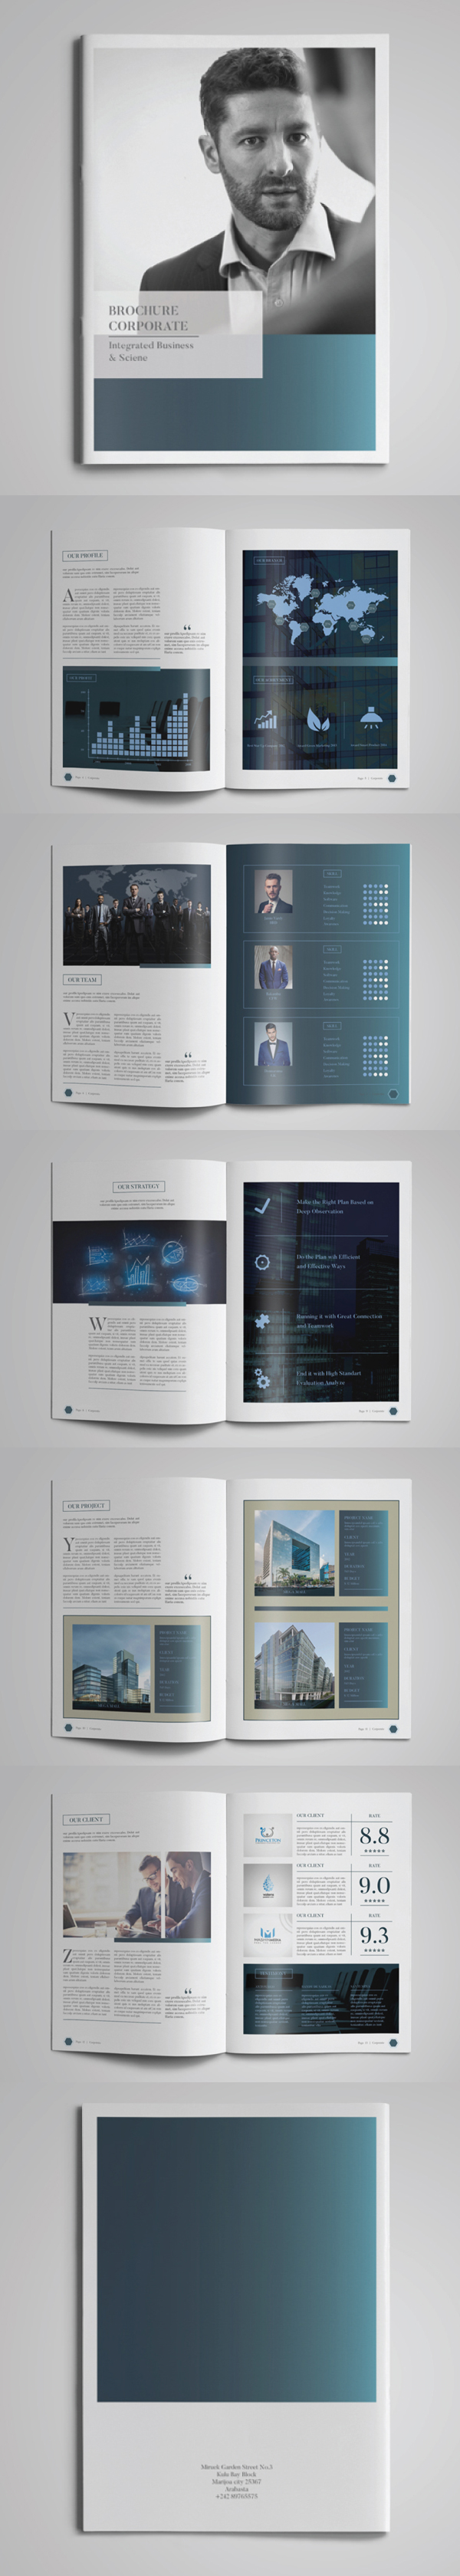 100 Professional Corporate Brochure Templates - 5